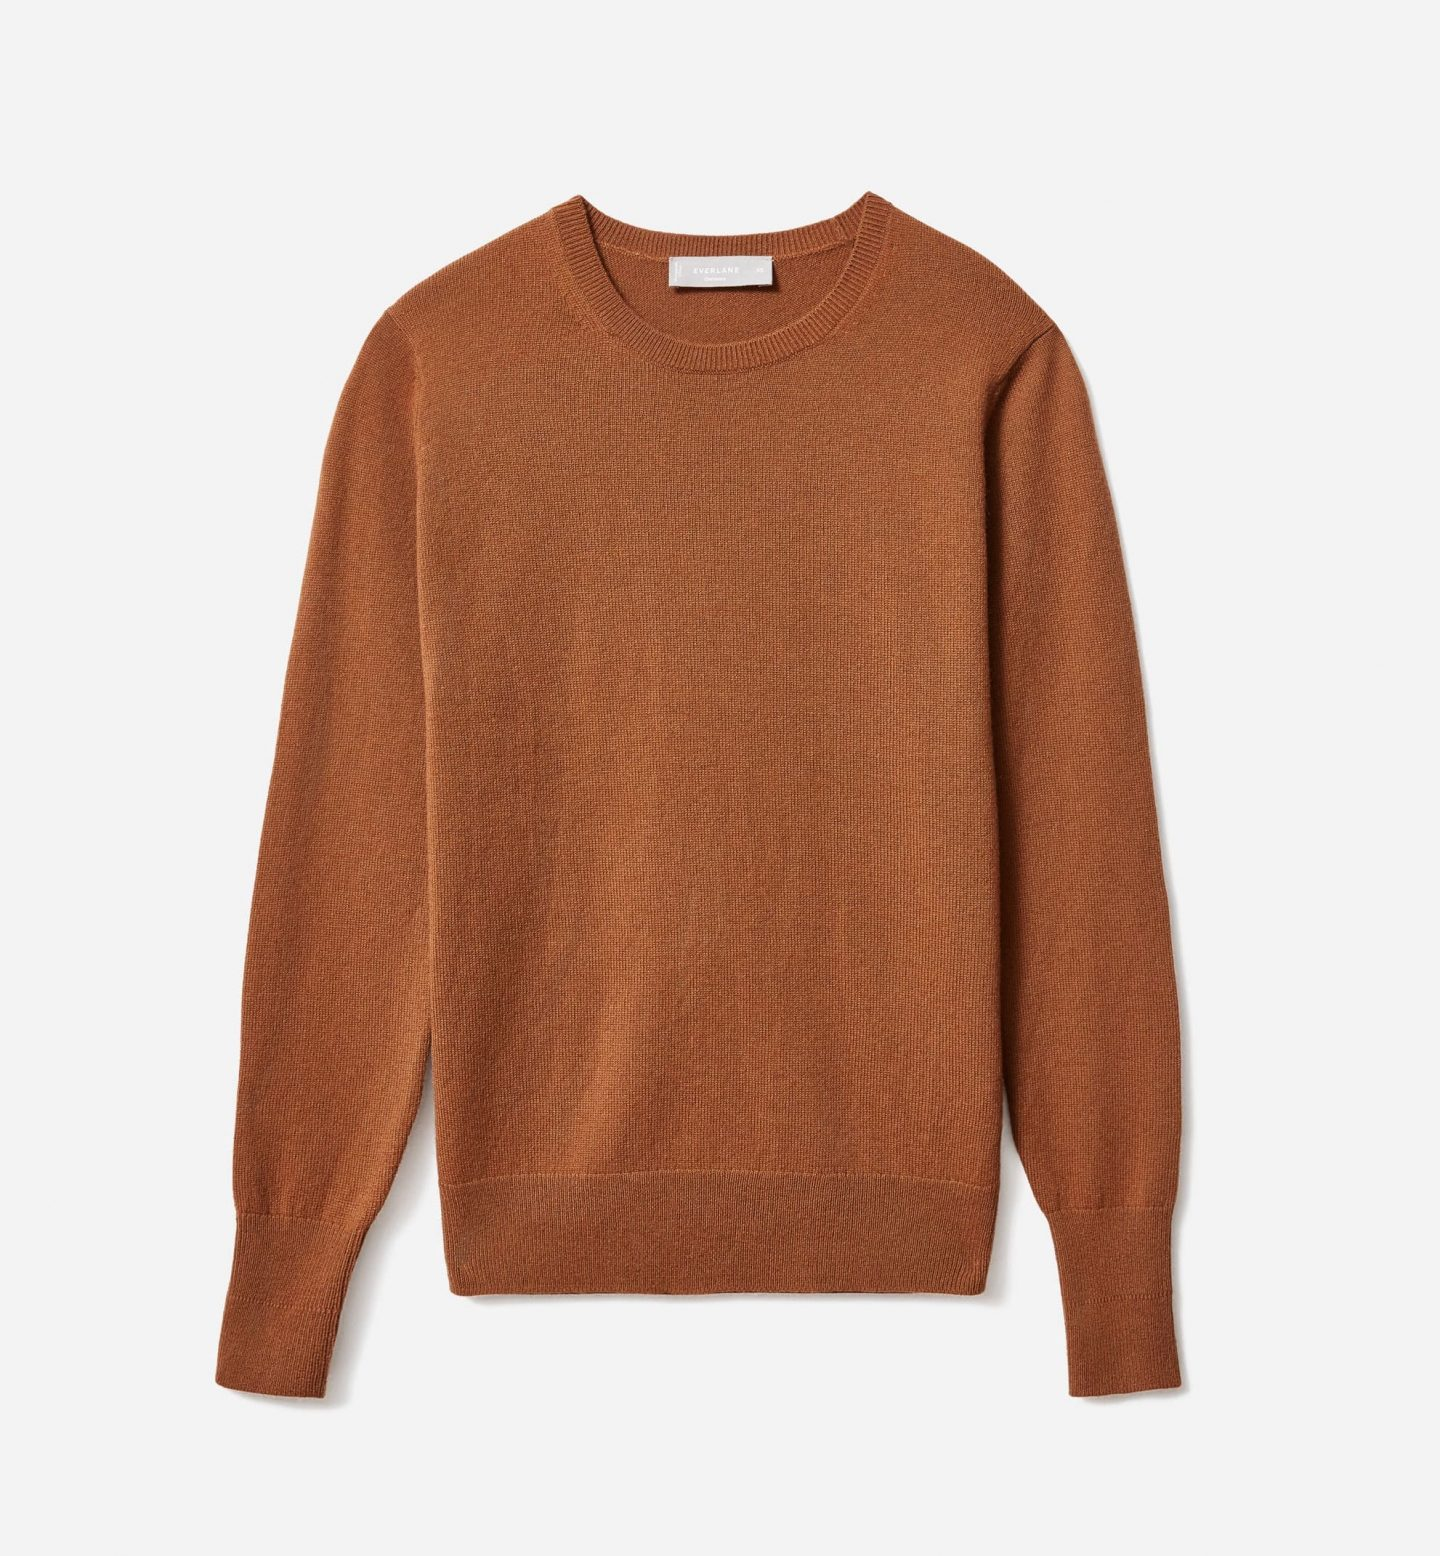 Sustainable camel brown crewneck sweater